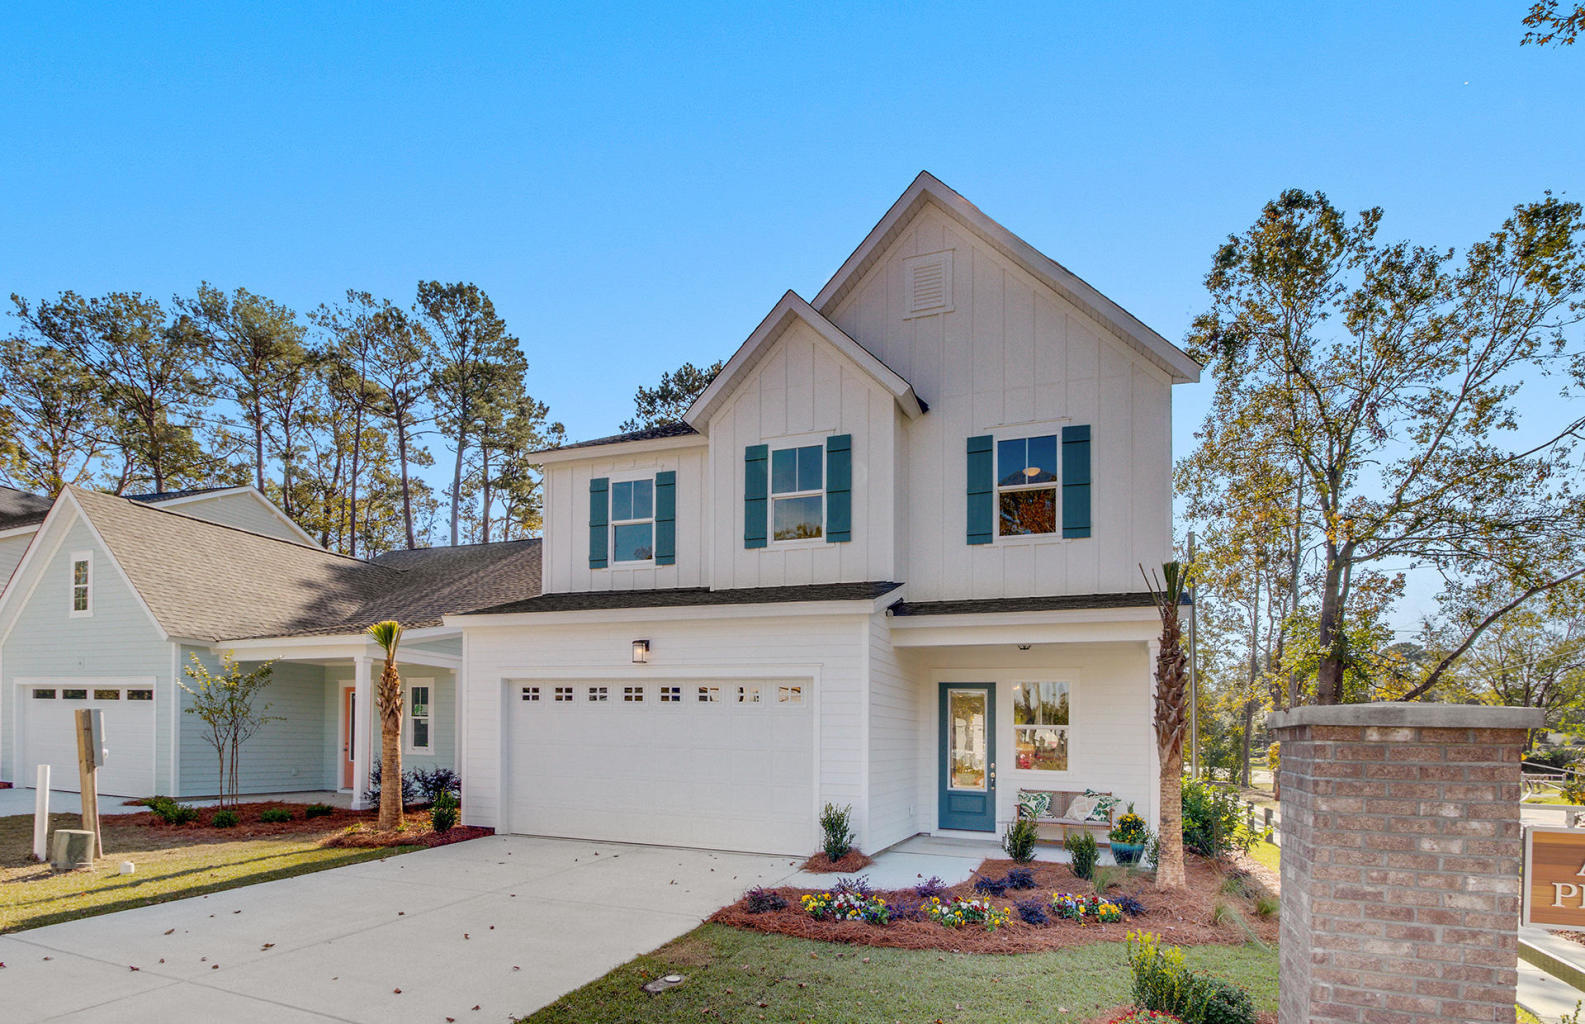 3029 Evening Tide Drive Hanahan, SC 29410